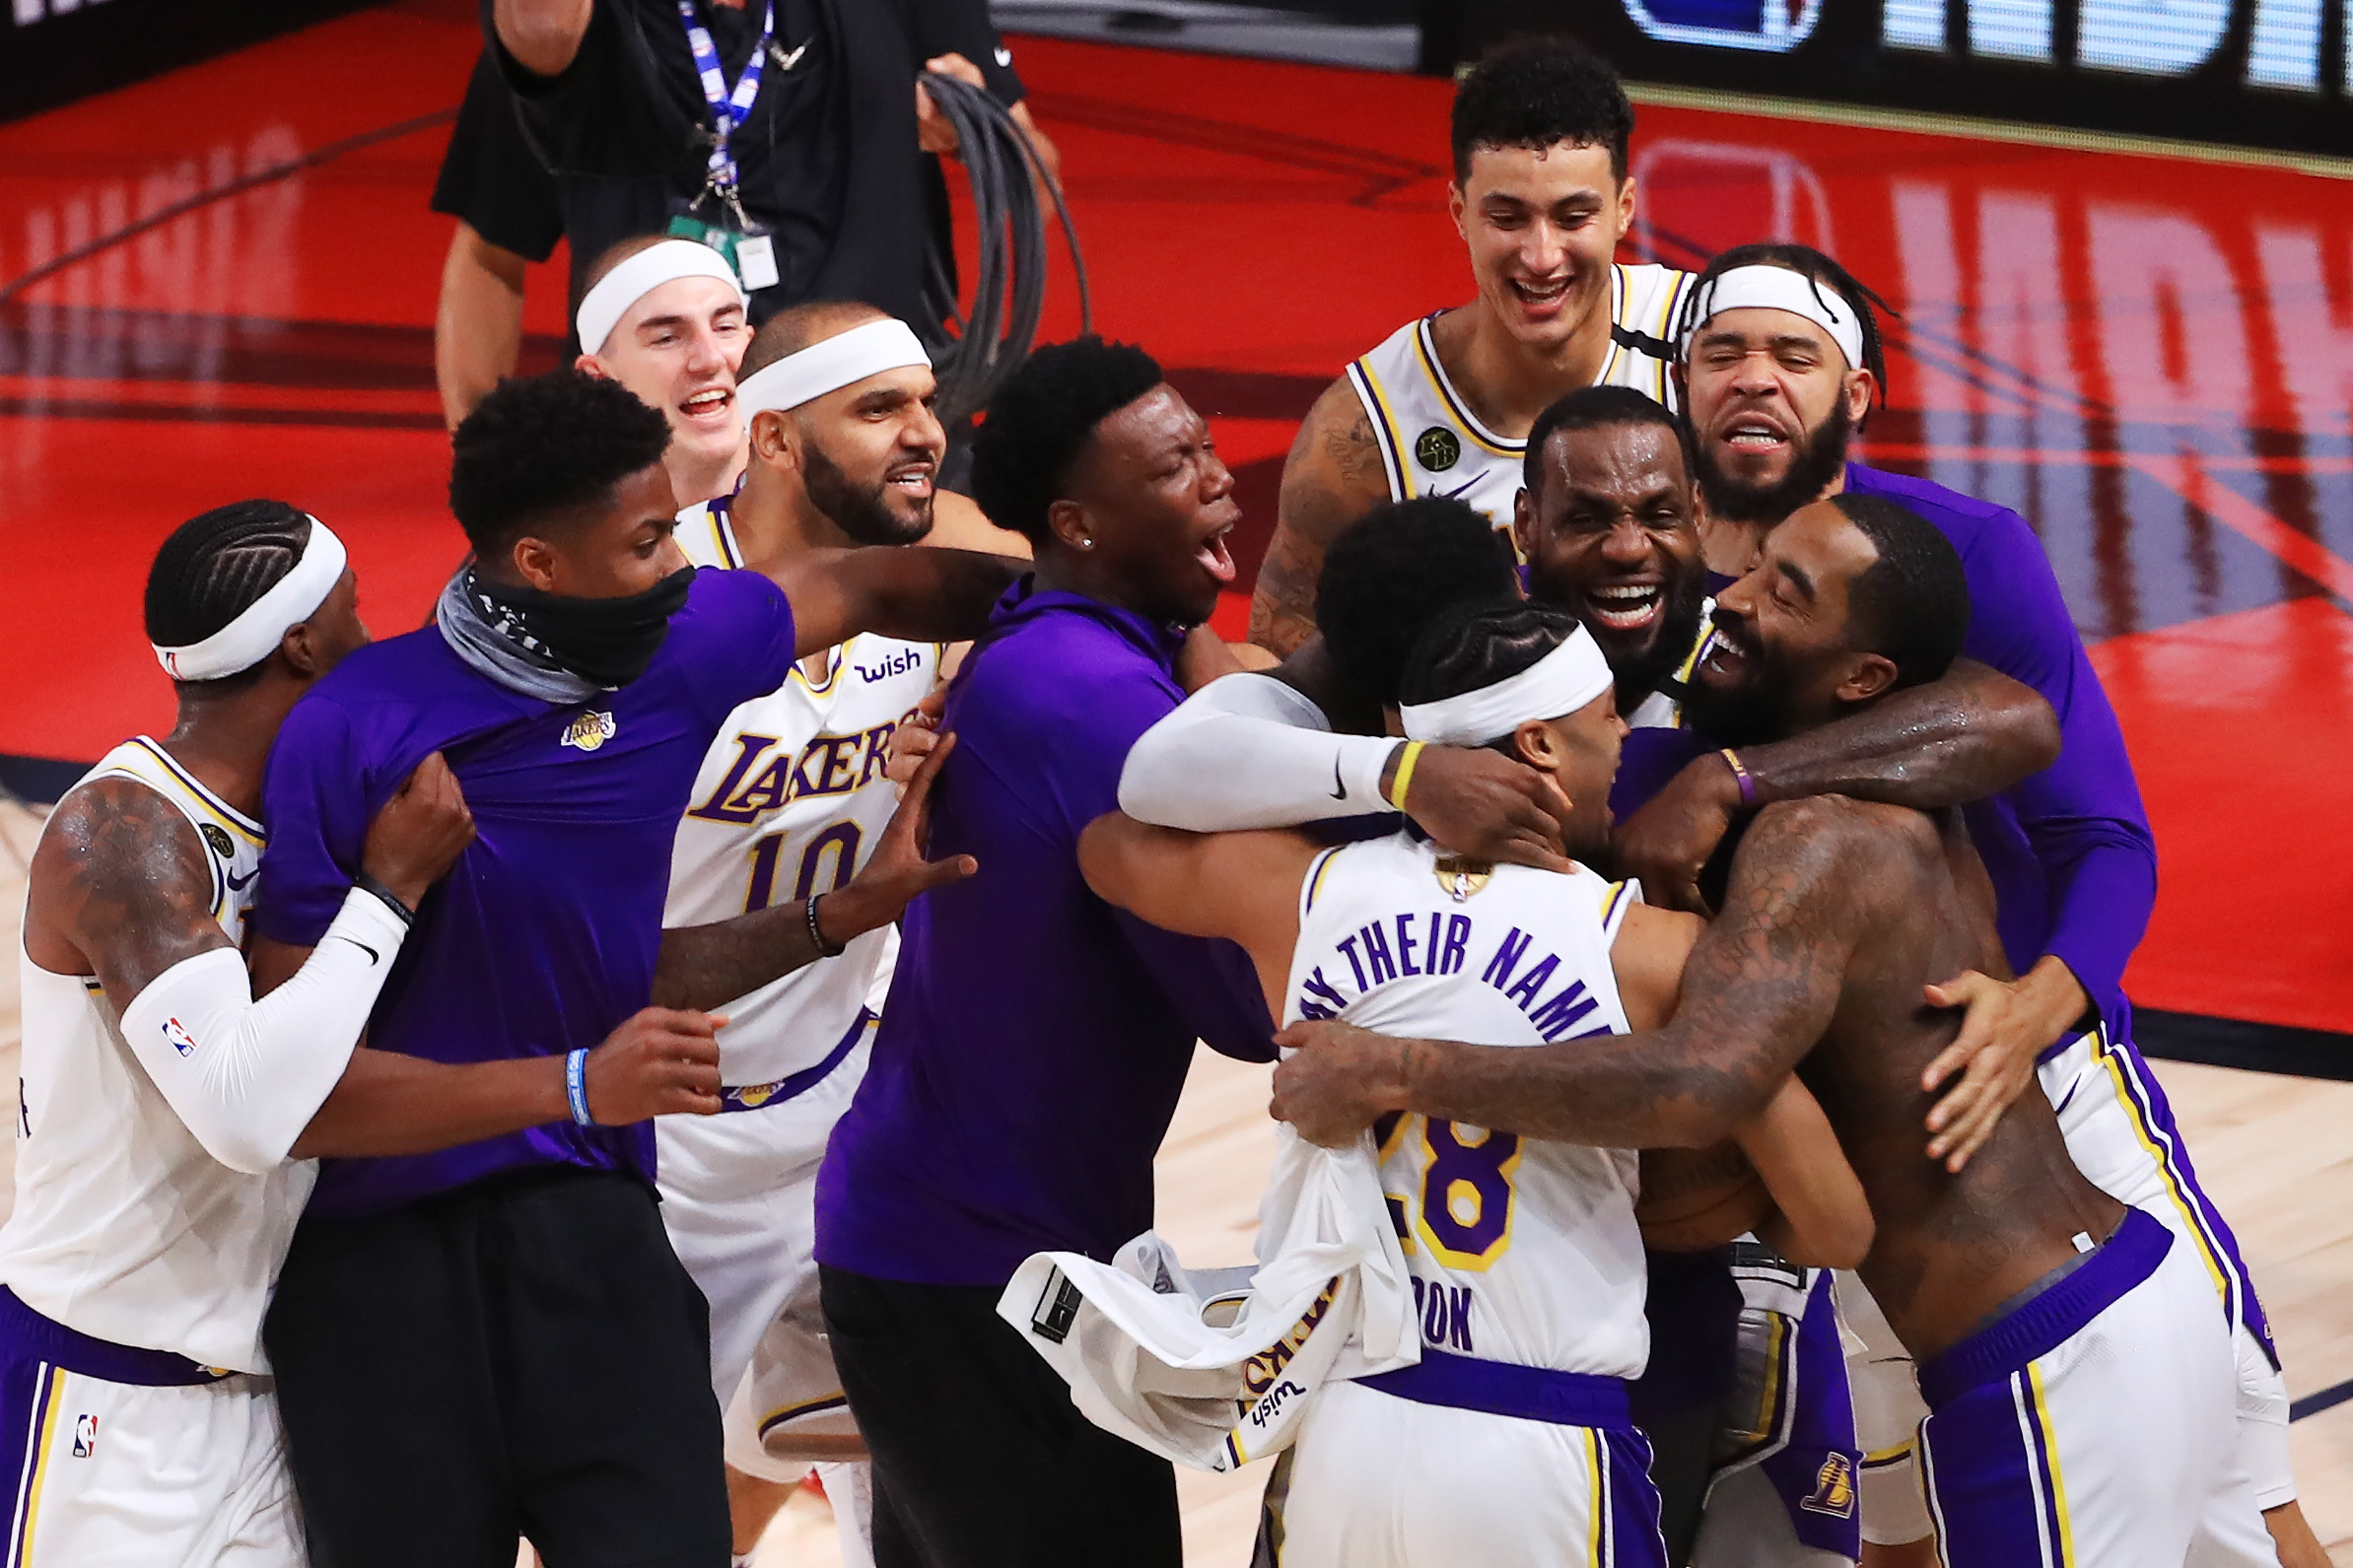 LeBron James and the Los Angeles Lakers could face an unprecedented challenge in the 2020-21 NBA season.